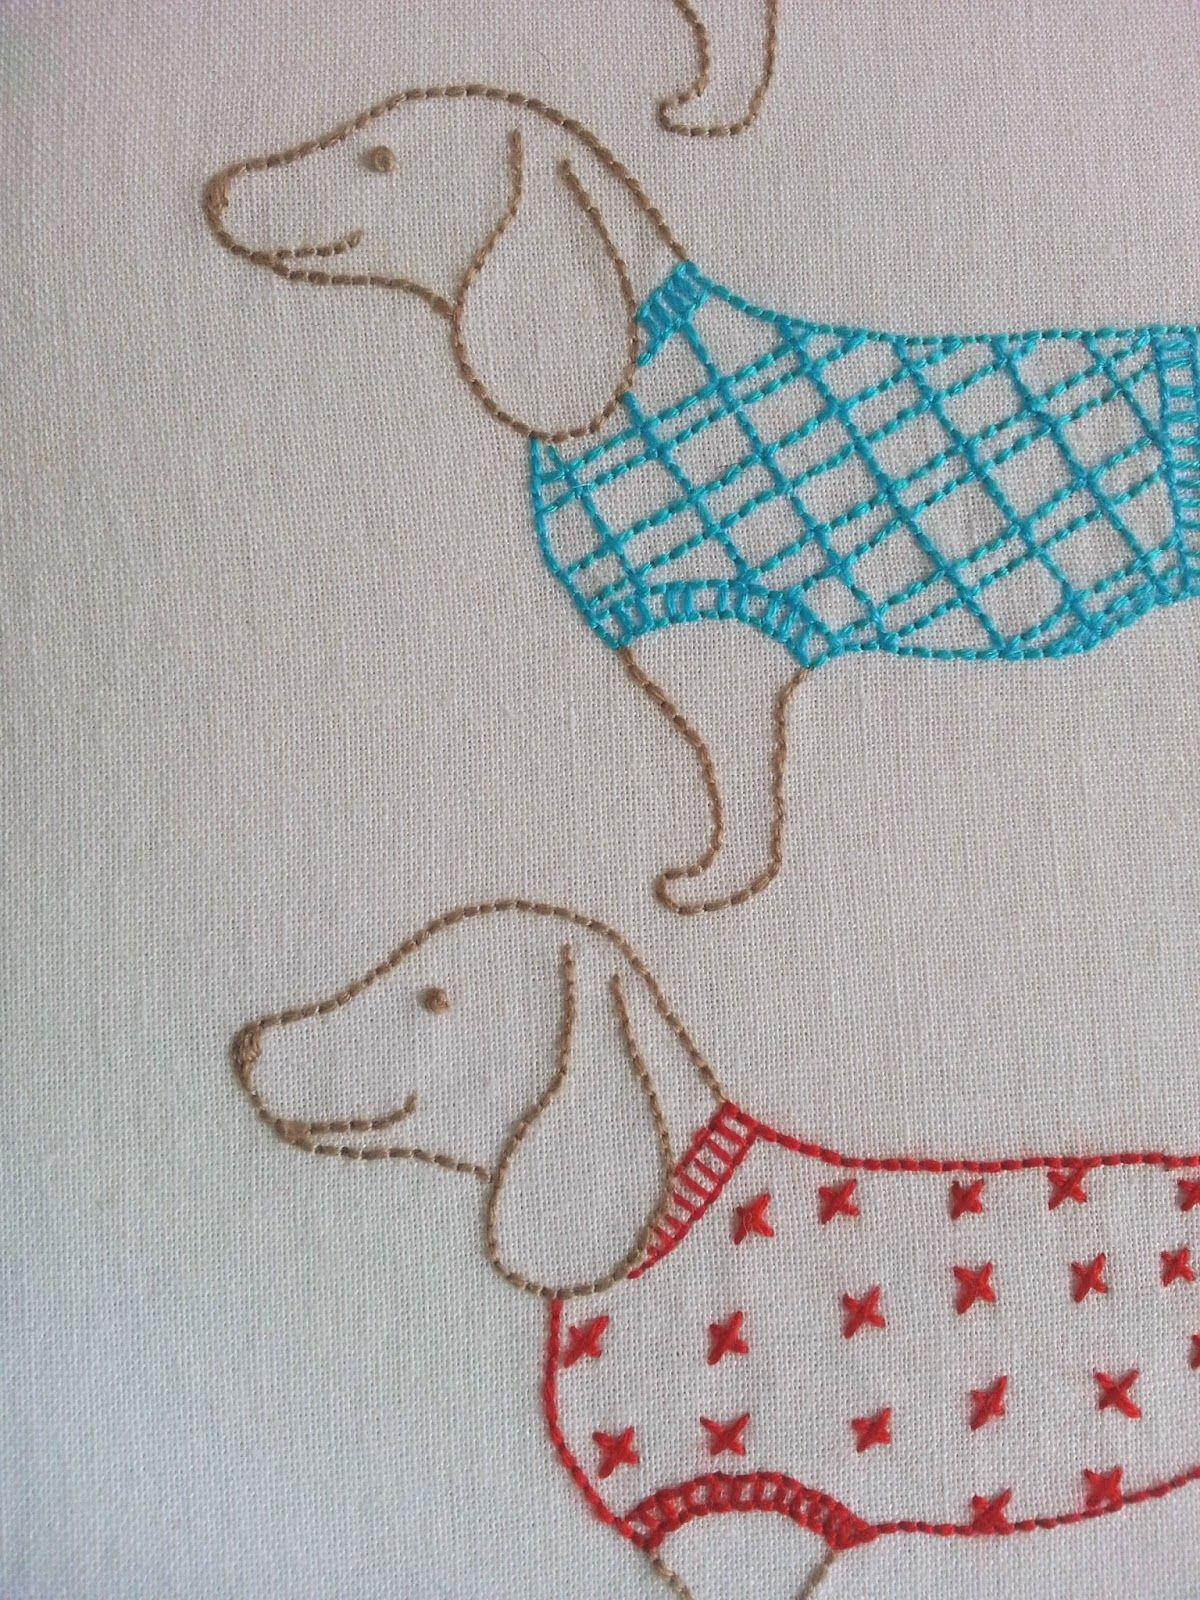 Ric-Rac: Moving On - Free Sausage Dog Embroidery Pattern | Crafts - Free Printable Dachshund Sewing Pattern